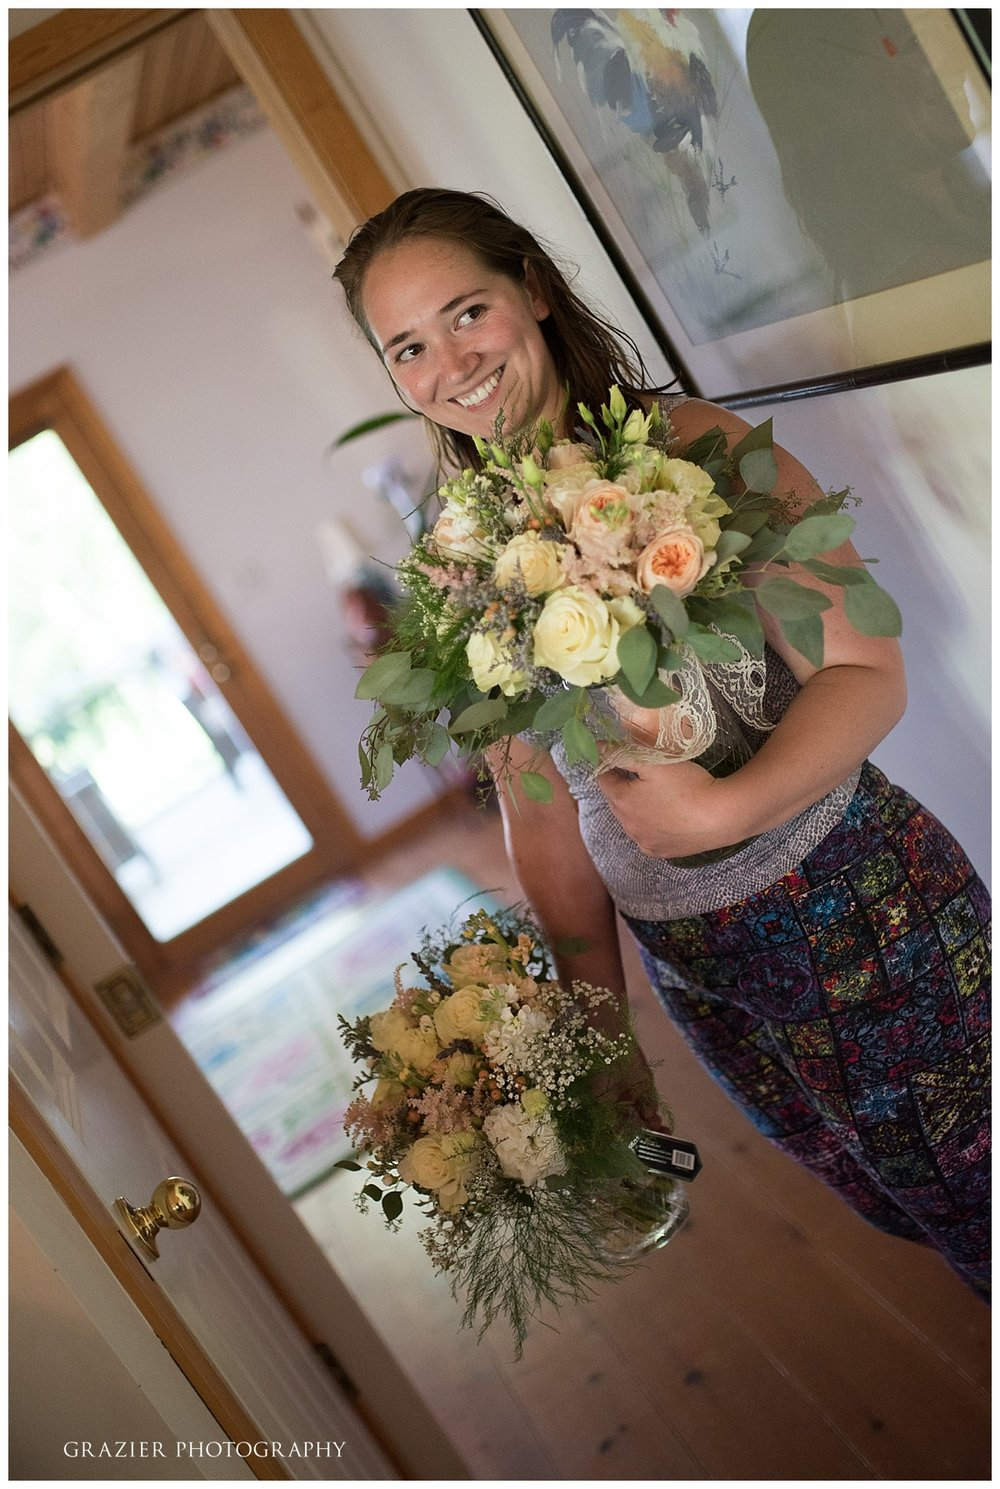 Tyrone Farm Wedding Grazier Photography 2017-18_WEB.jpg